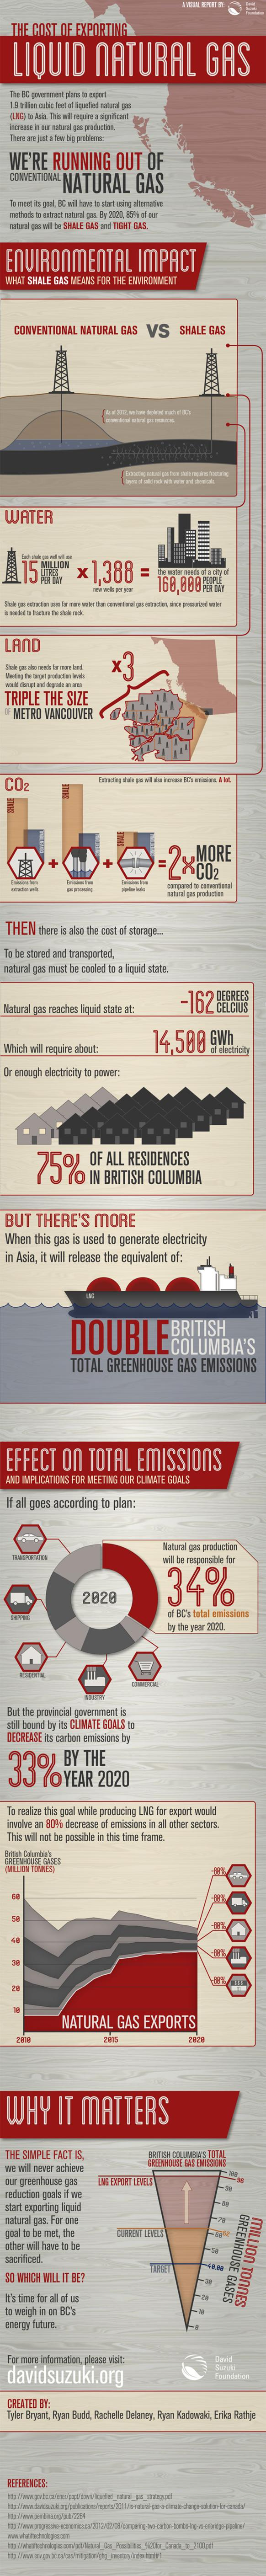 582px version of LNG Infographic, full size